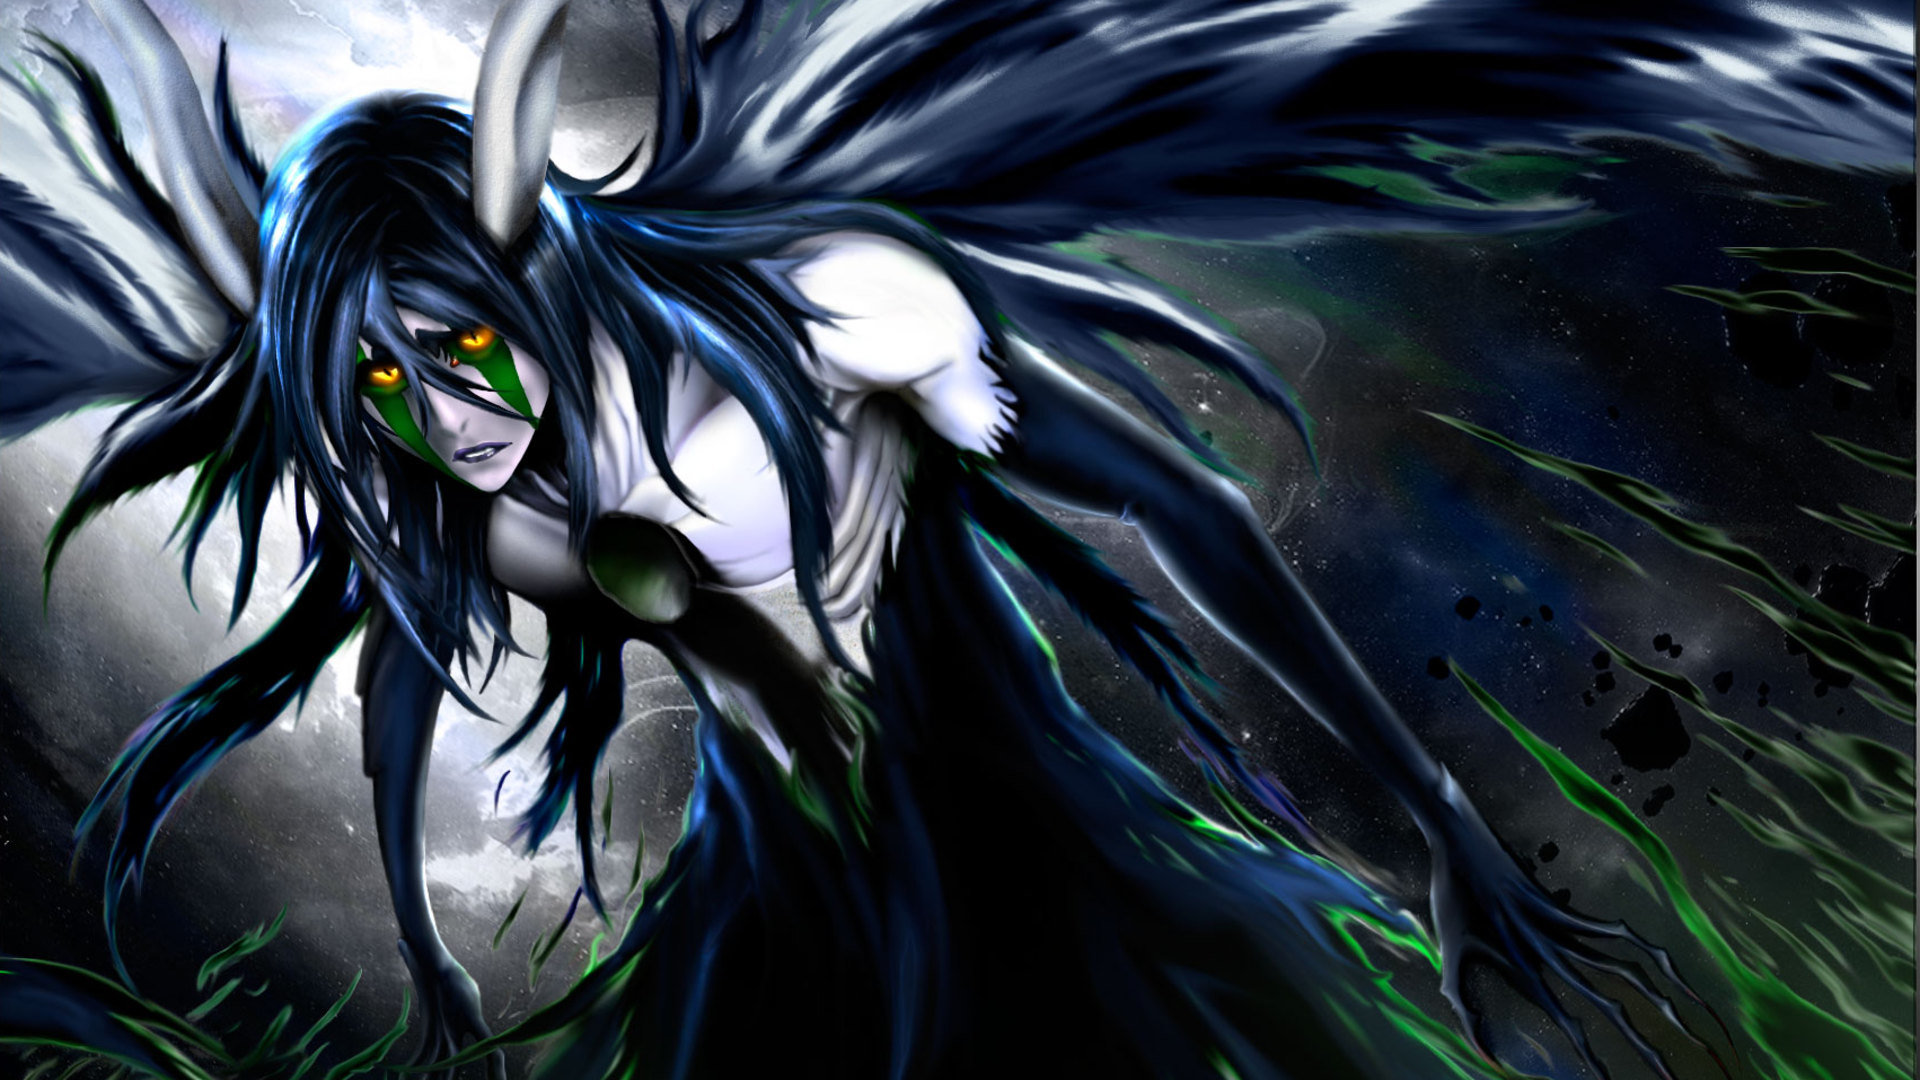 Free Ulquiorra Cifer high quality wallpaper ID:418678 for hd 1080p computer